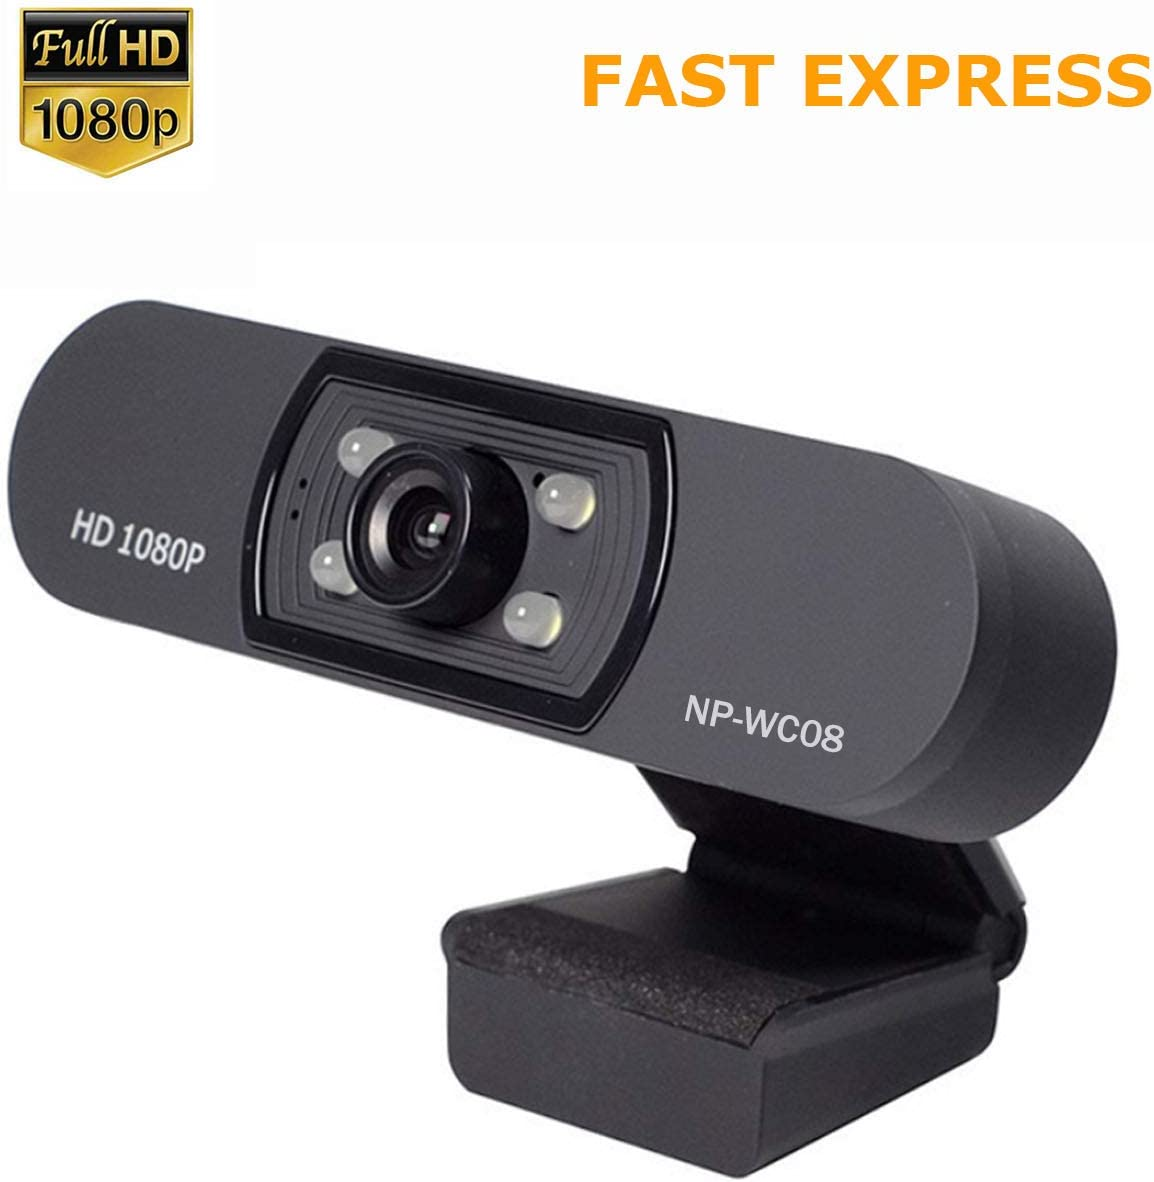 1080P Webcam, NP HD PC Webcam USB Mini Computer Camera Built-in Microphone, Flexible Rotatable Clip, for Laptops, Desktop and Gaming, Black …